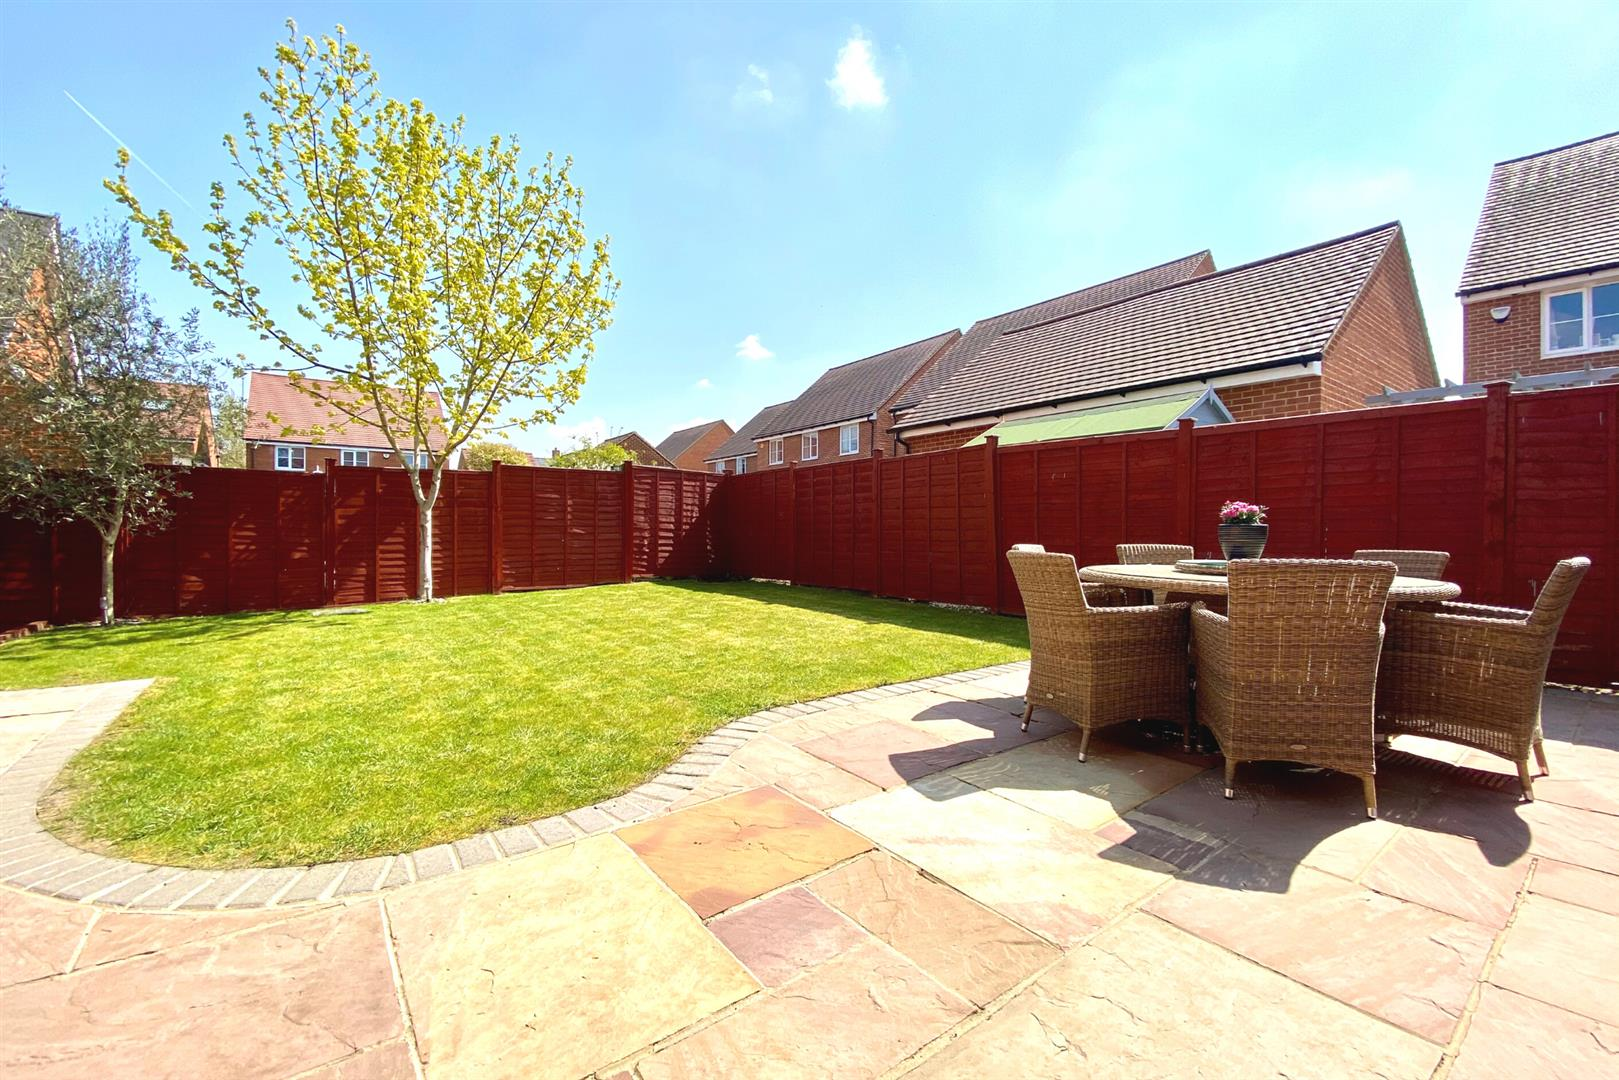 5 bed detached for sale in Three Mile Cross  - Property Image 2